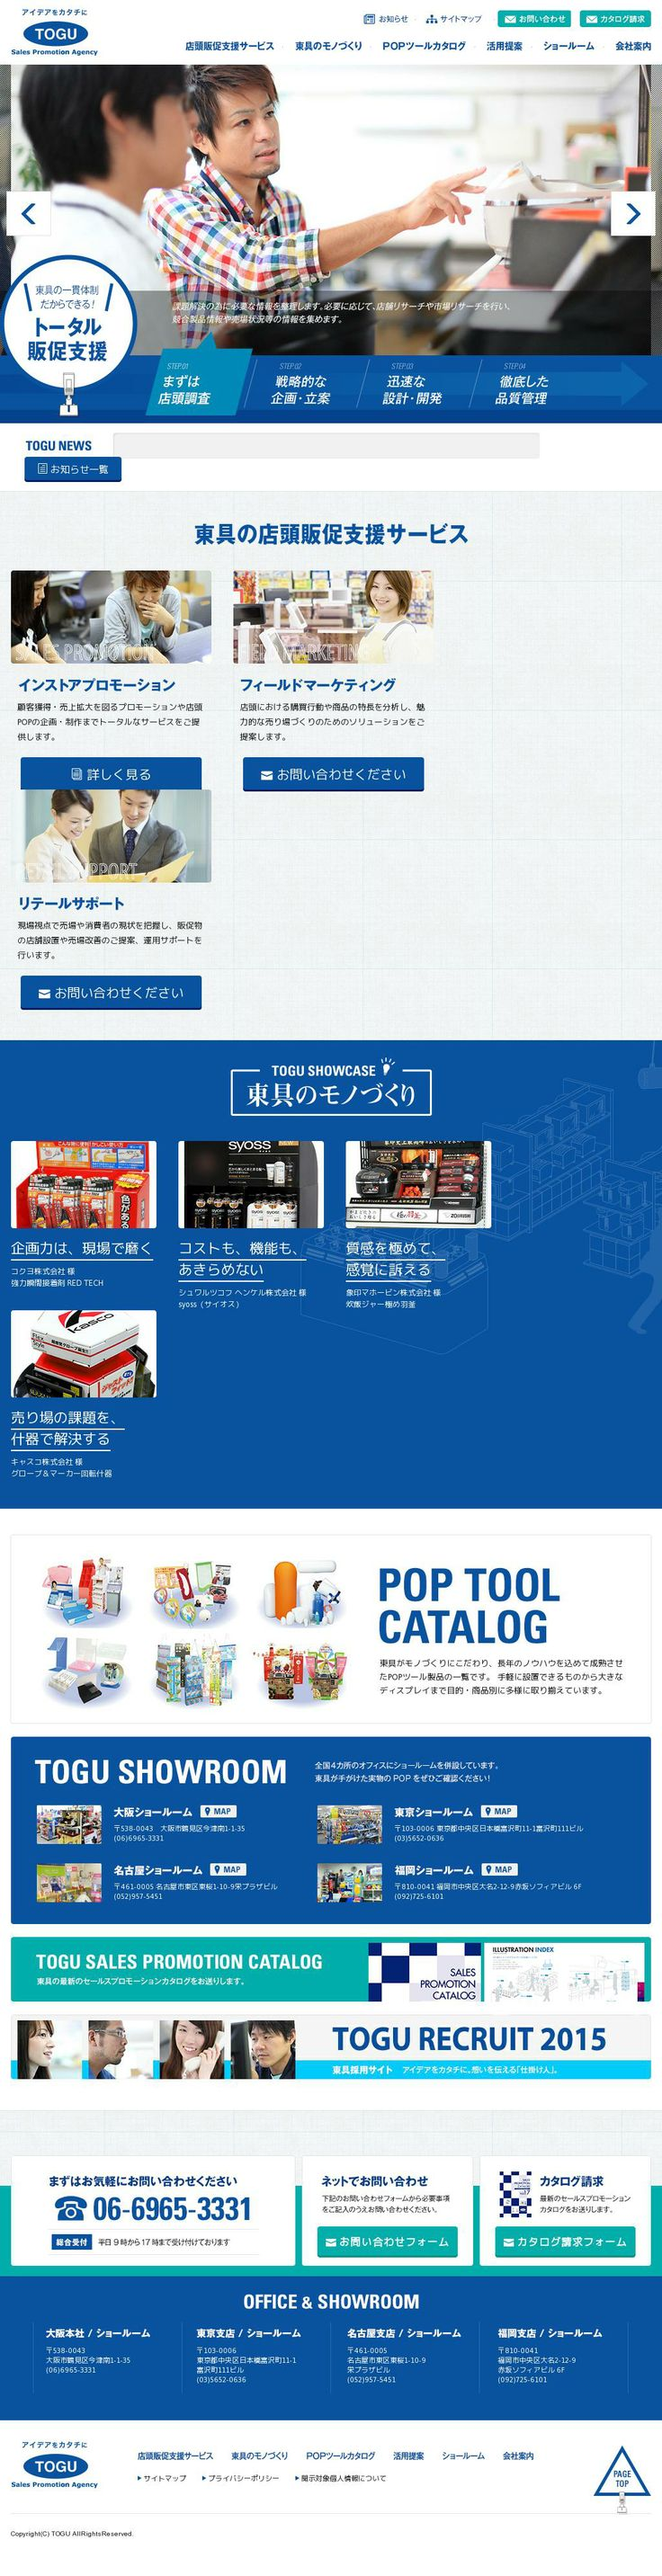 The website 'http://www.togu.co.jp/' courtesy of @Pinstamatic (http://pinstamatic.com)